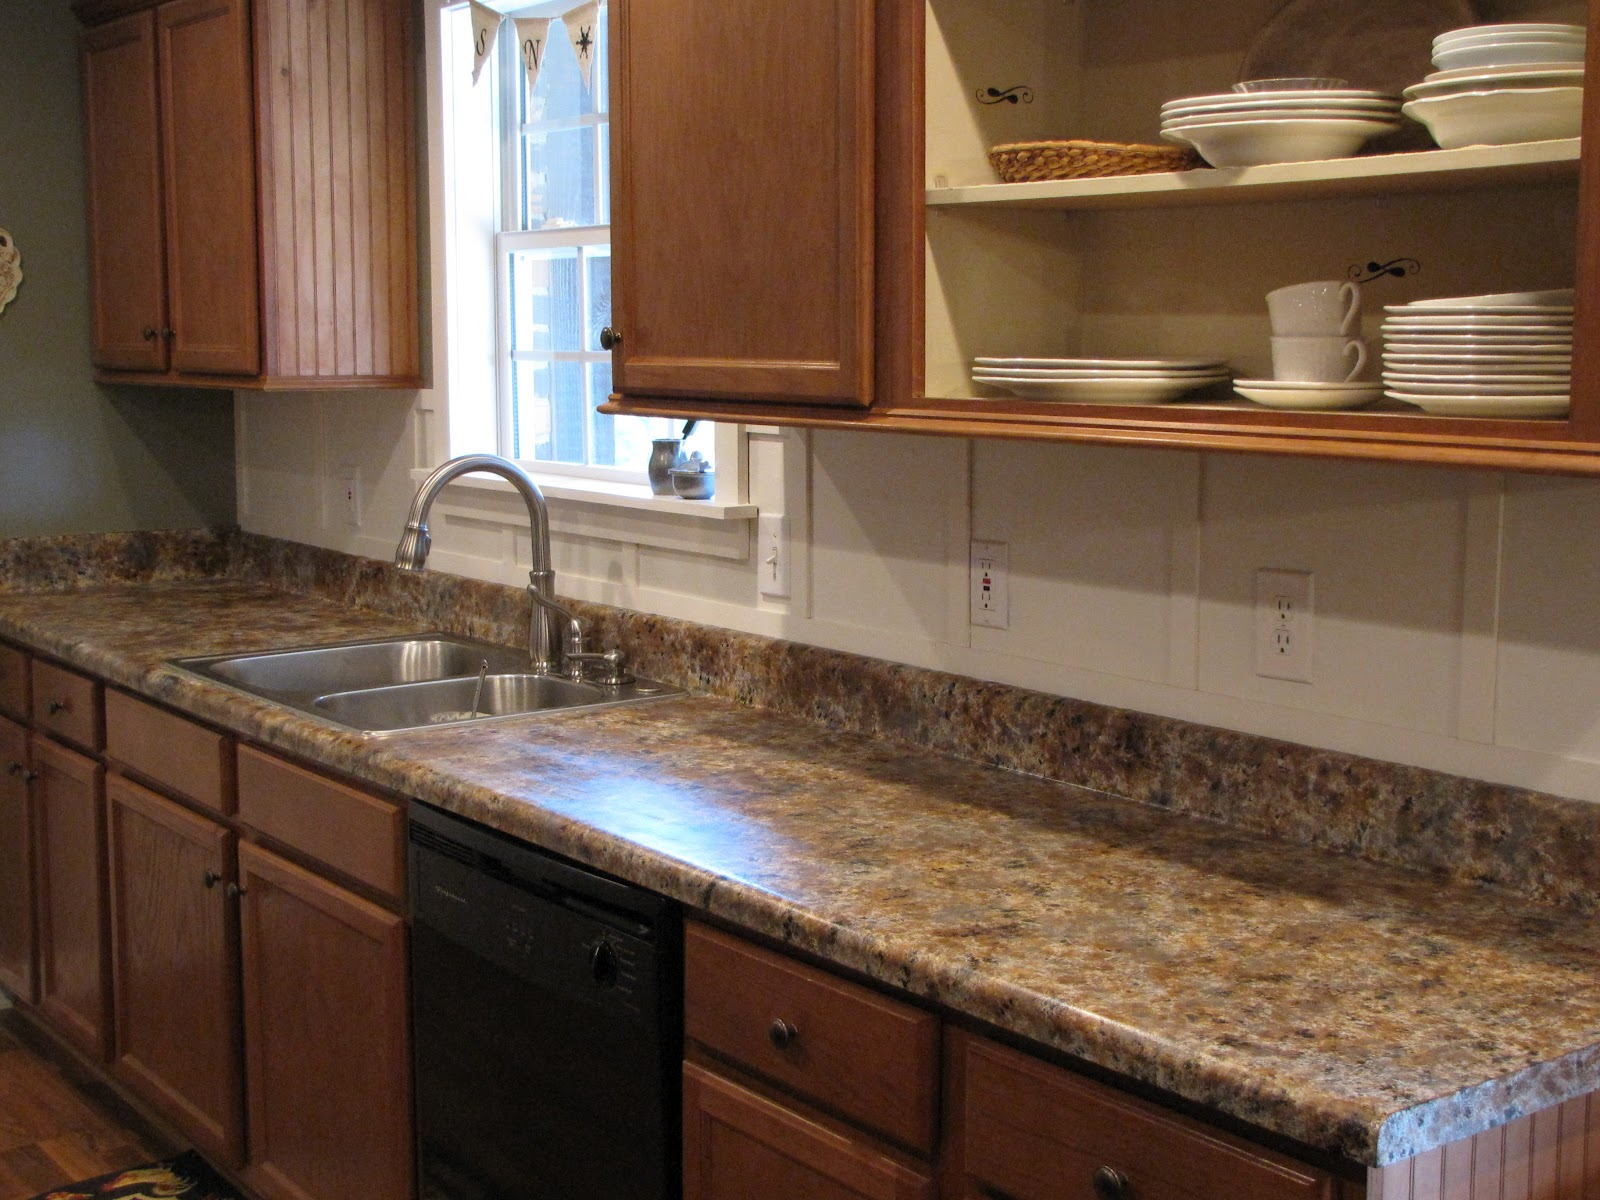 Laminate Countertop : Painting Laminate Countertops In The Kitchen